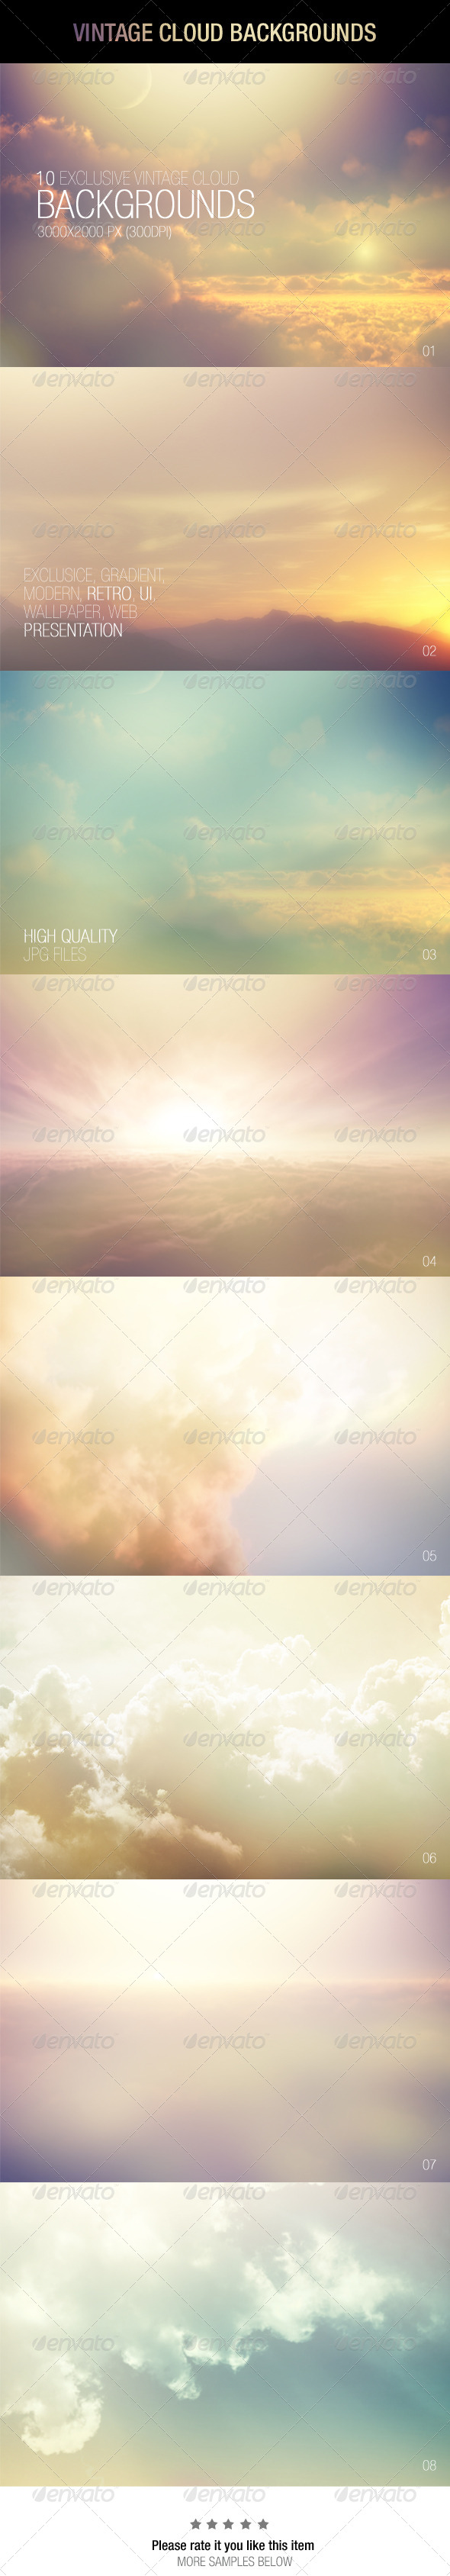 GraphicRiver Vintage Cloud Backgrounds 7019420